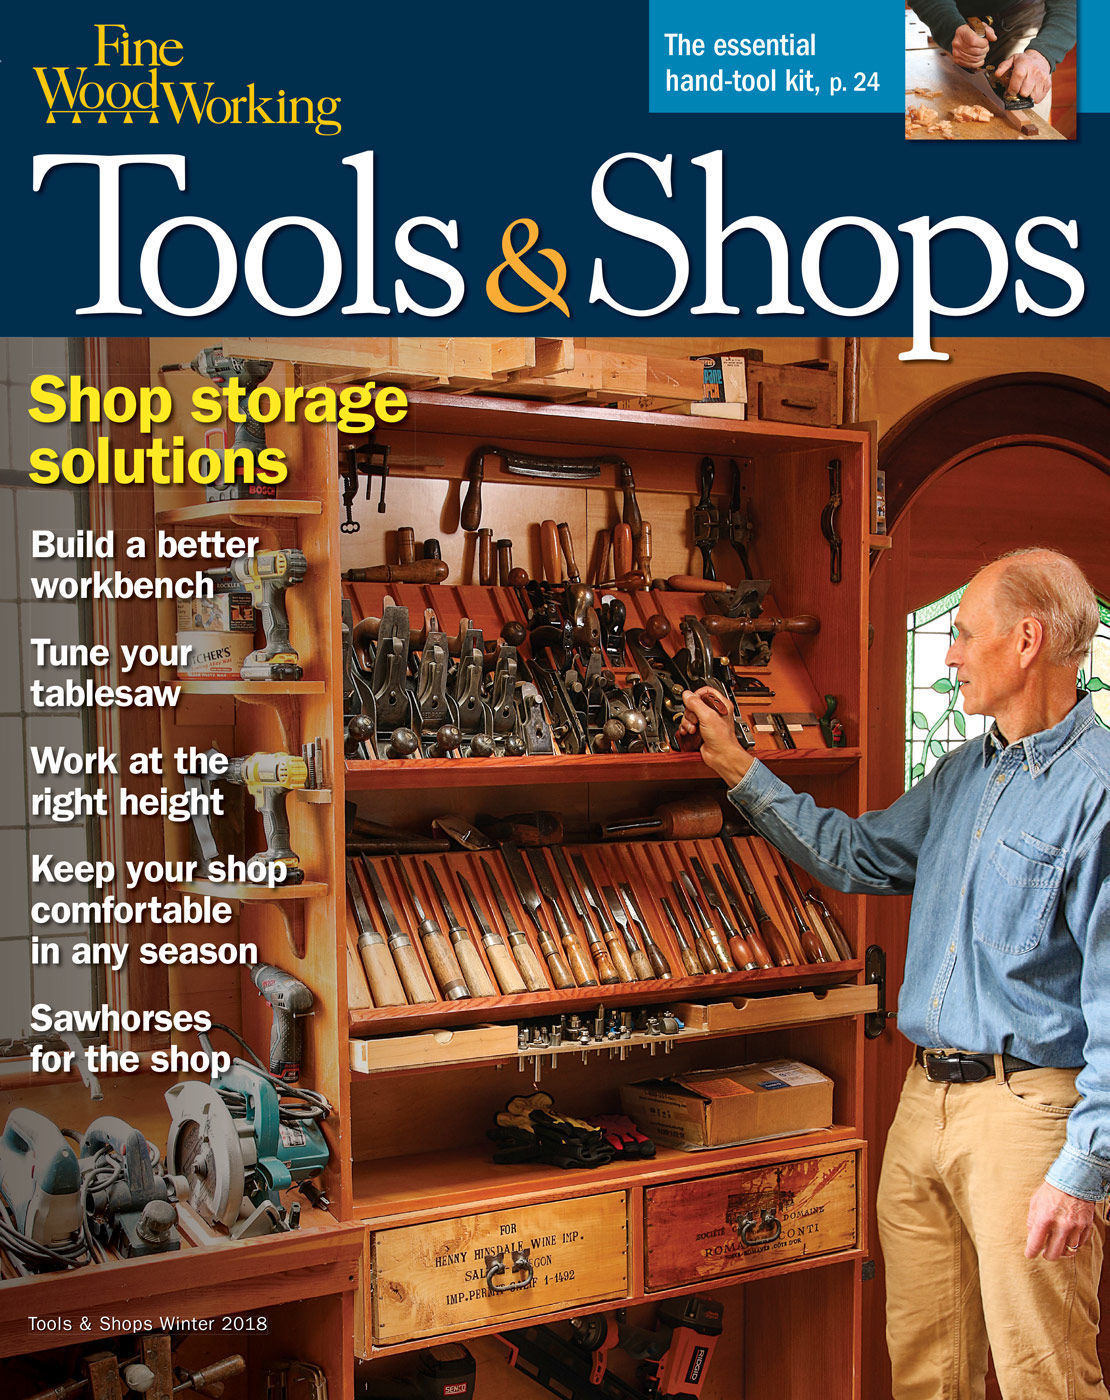 265 Tools Shops 2018 Finewoodworking